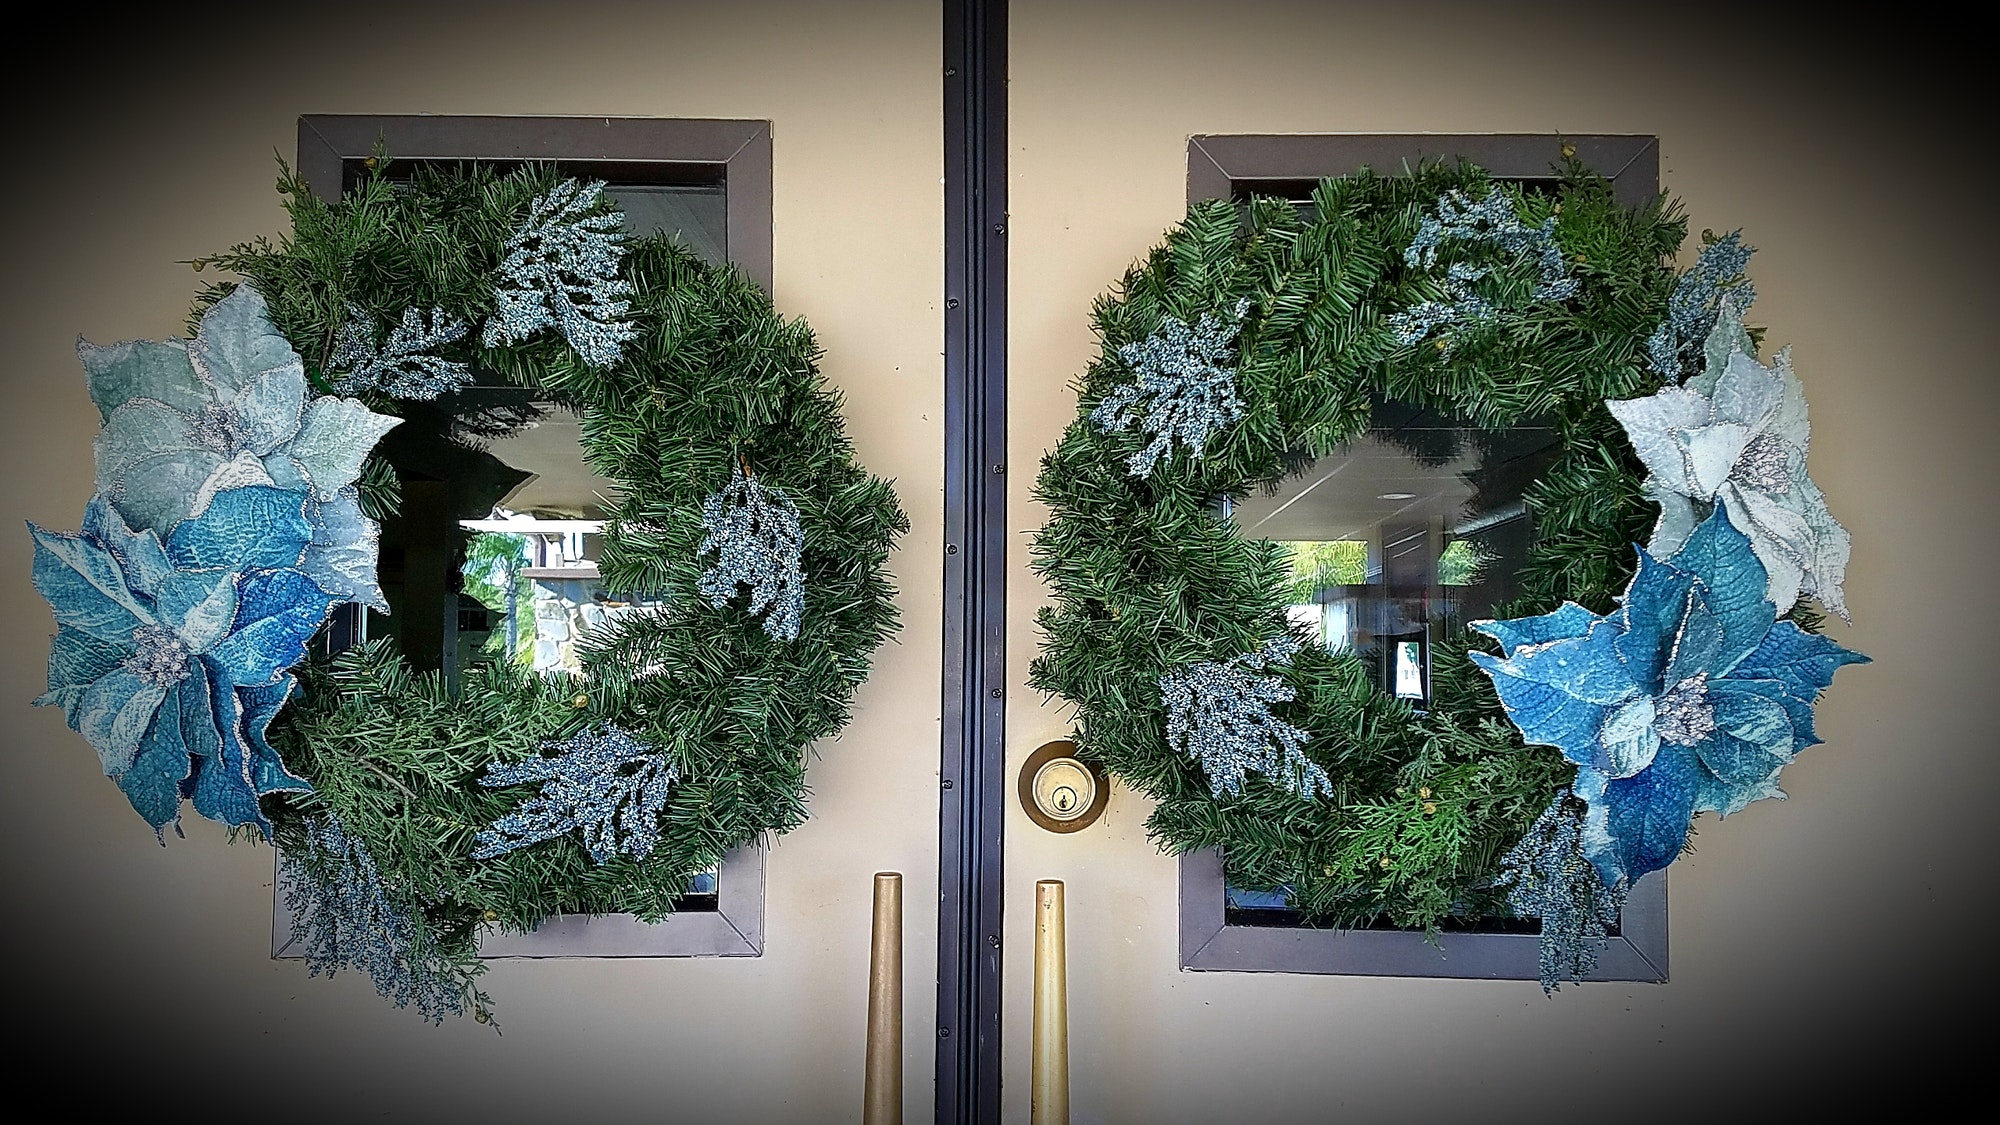 May contain: wreath